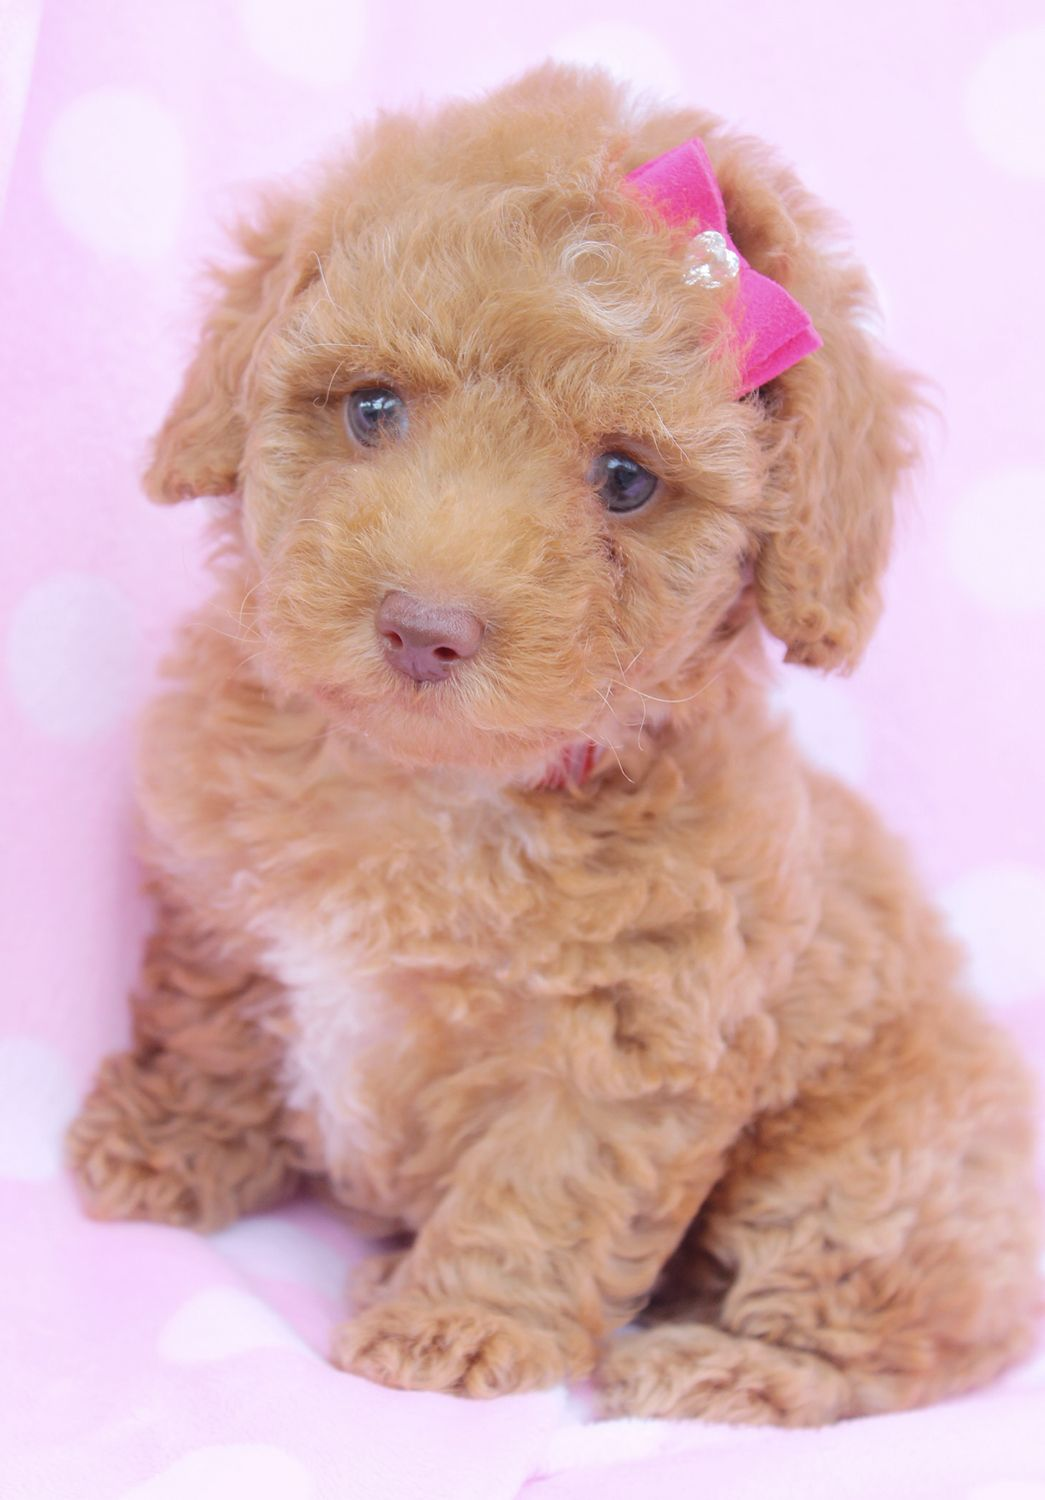 Toy Poodle Puppy For Sale in South Florida Miniature